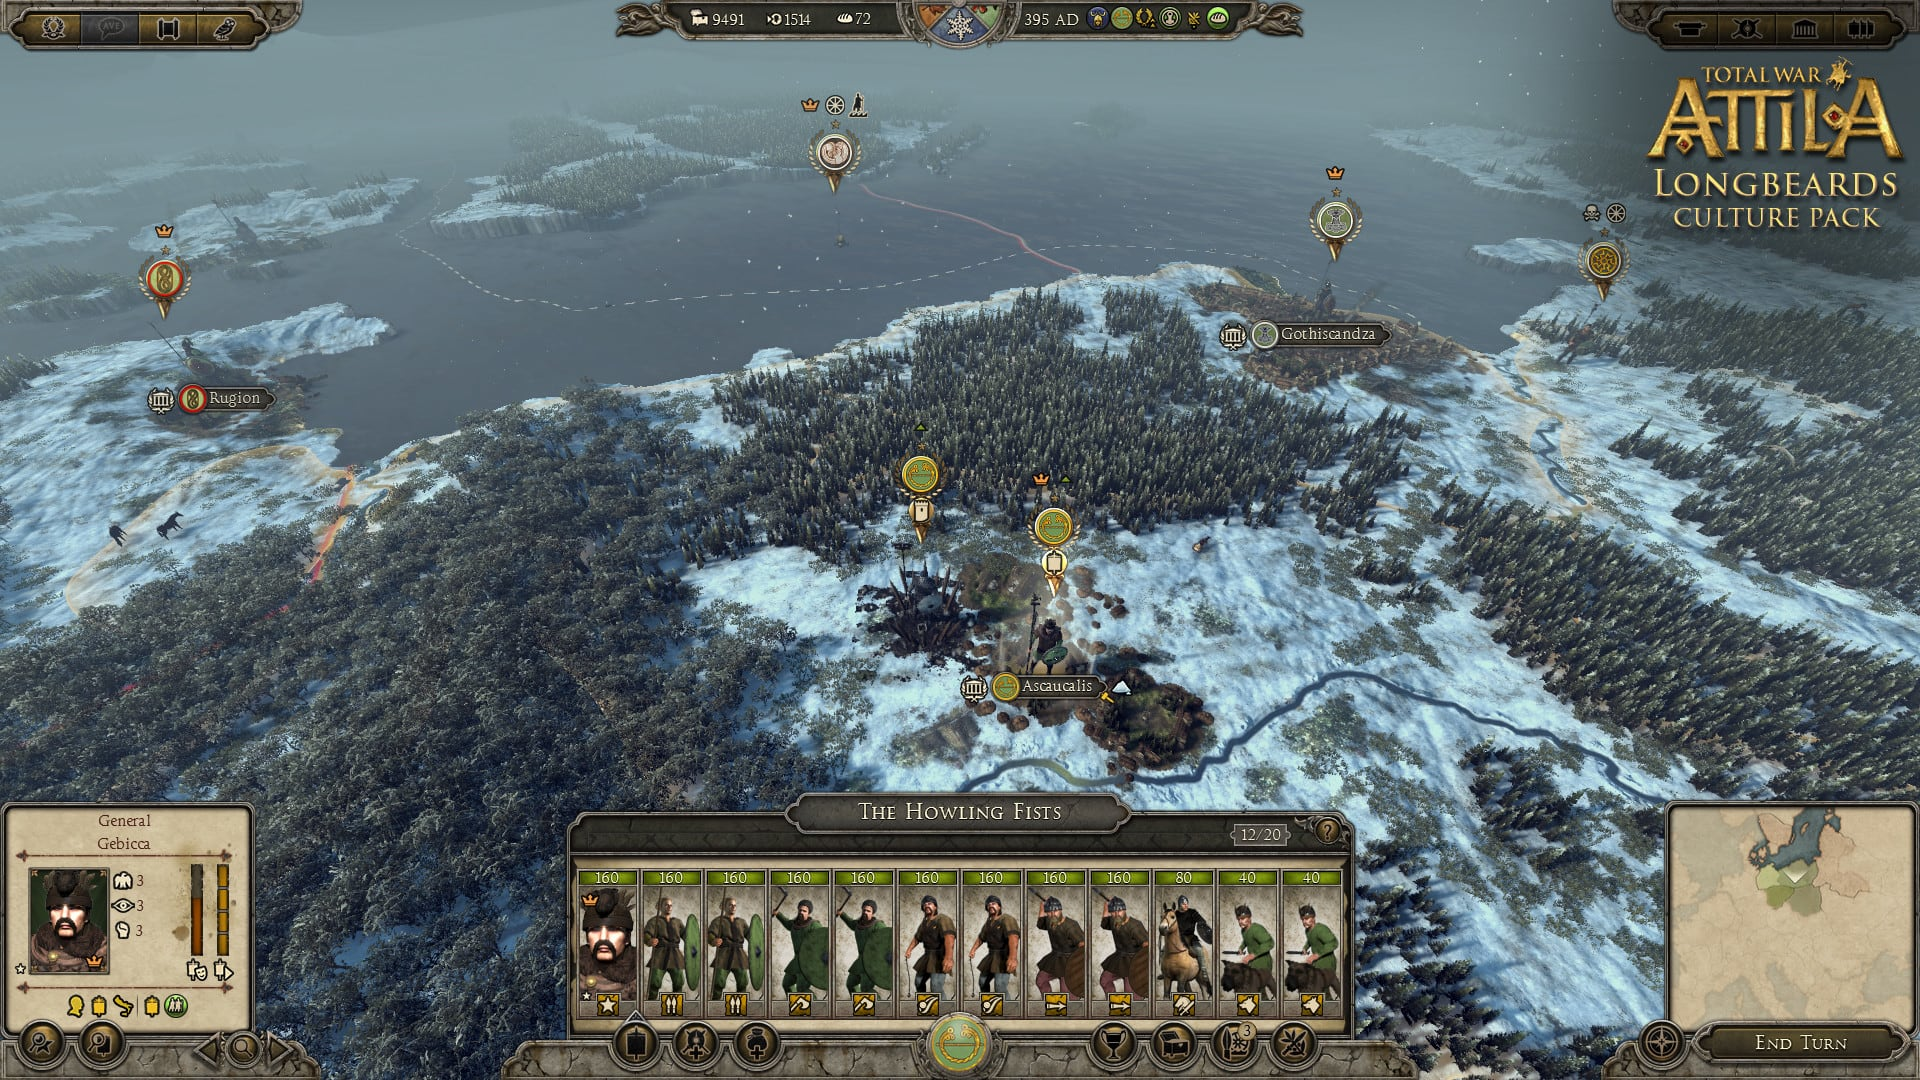 Total War: Attila Longbeards Culture Pack